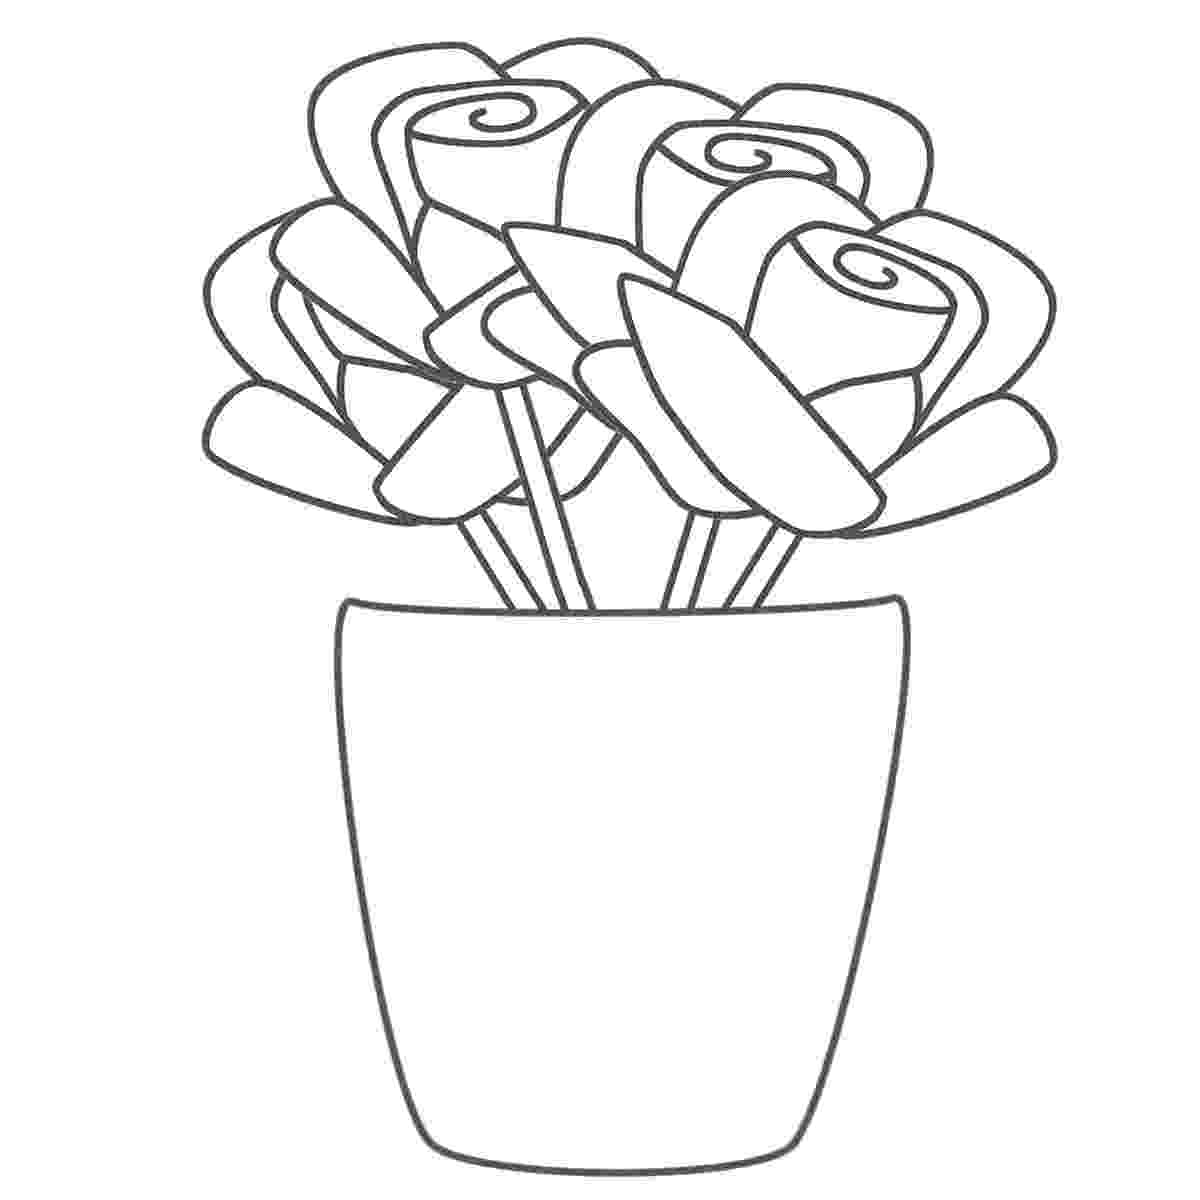 roses coloring pictures top 10 rose coloring pages that are beyond beautiful roses pictures coloring